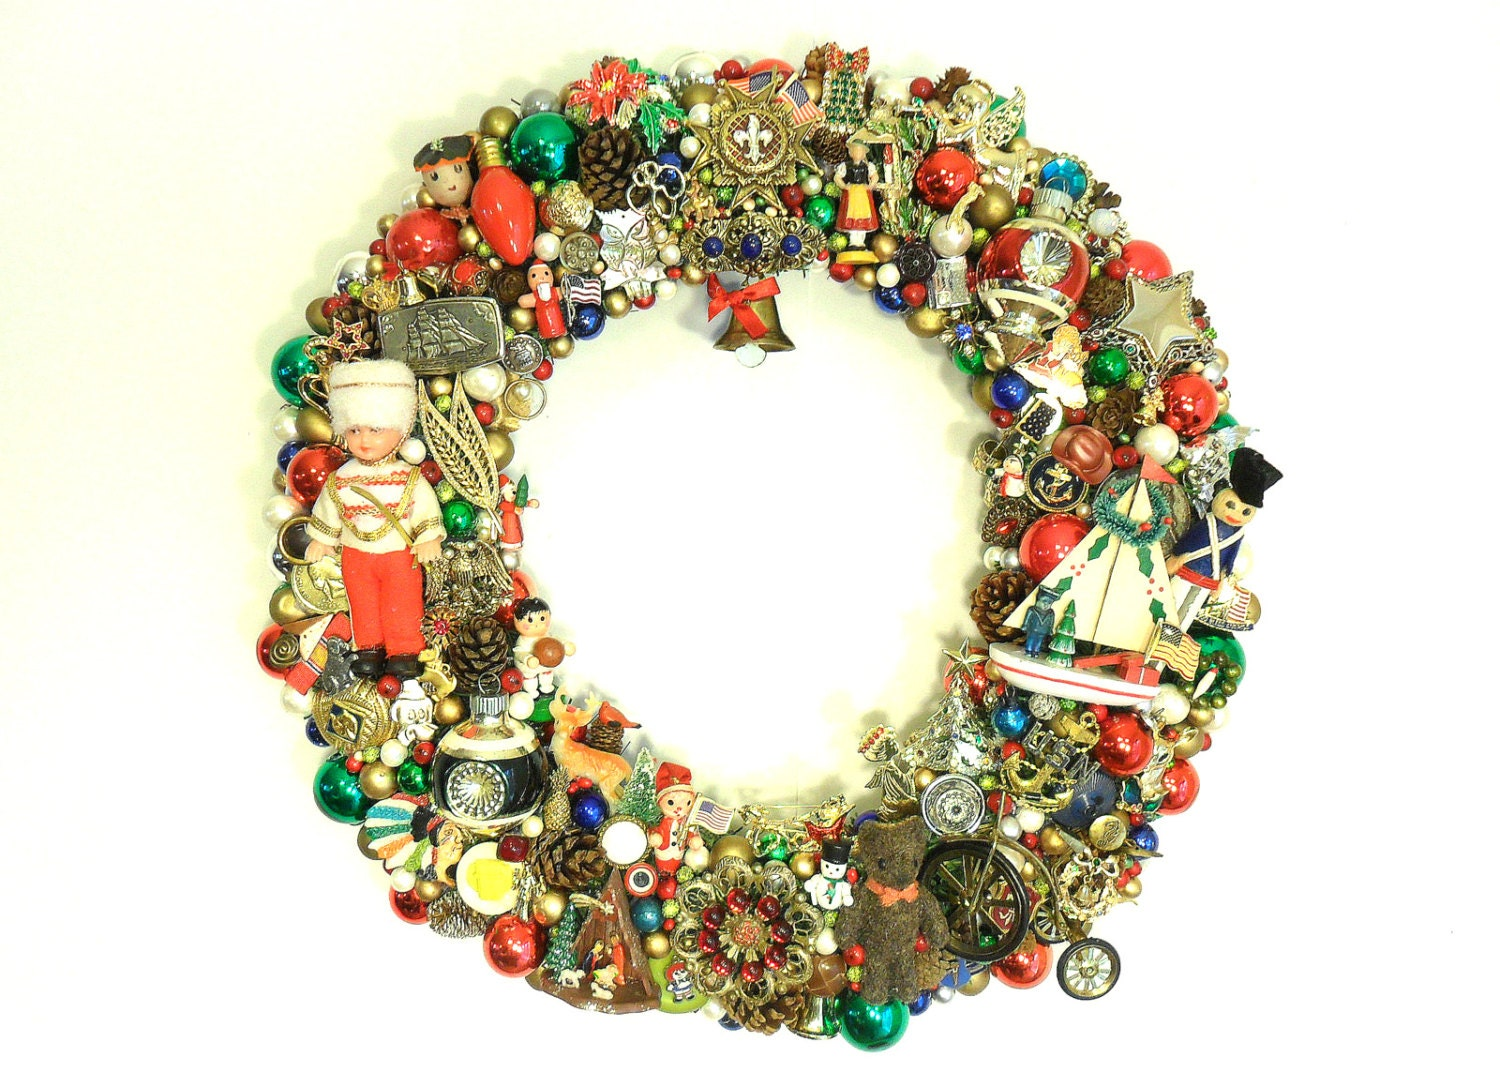 Christmas wreath with vintage jewelry trinkets by sweetlenasretro